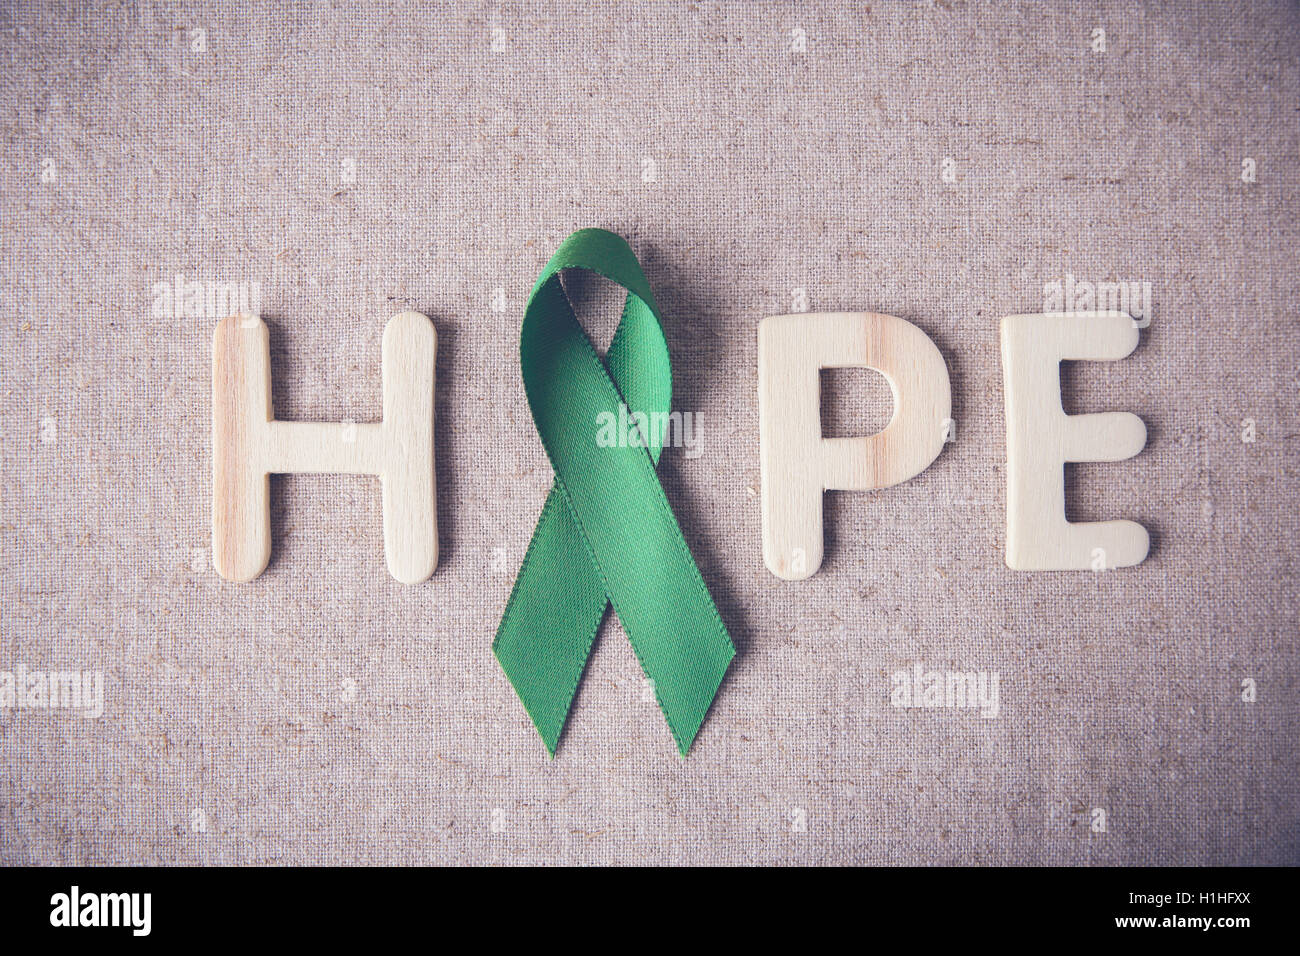 Kidney Cancer Stock Photos Kidney Cancer Stock Images Alamy